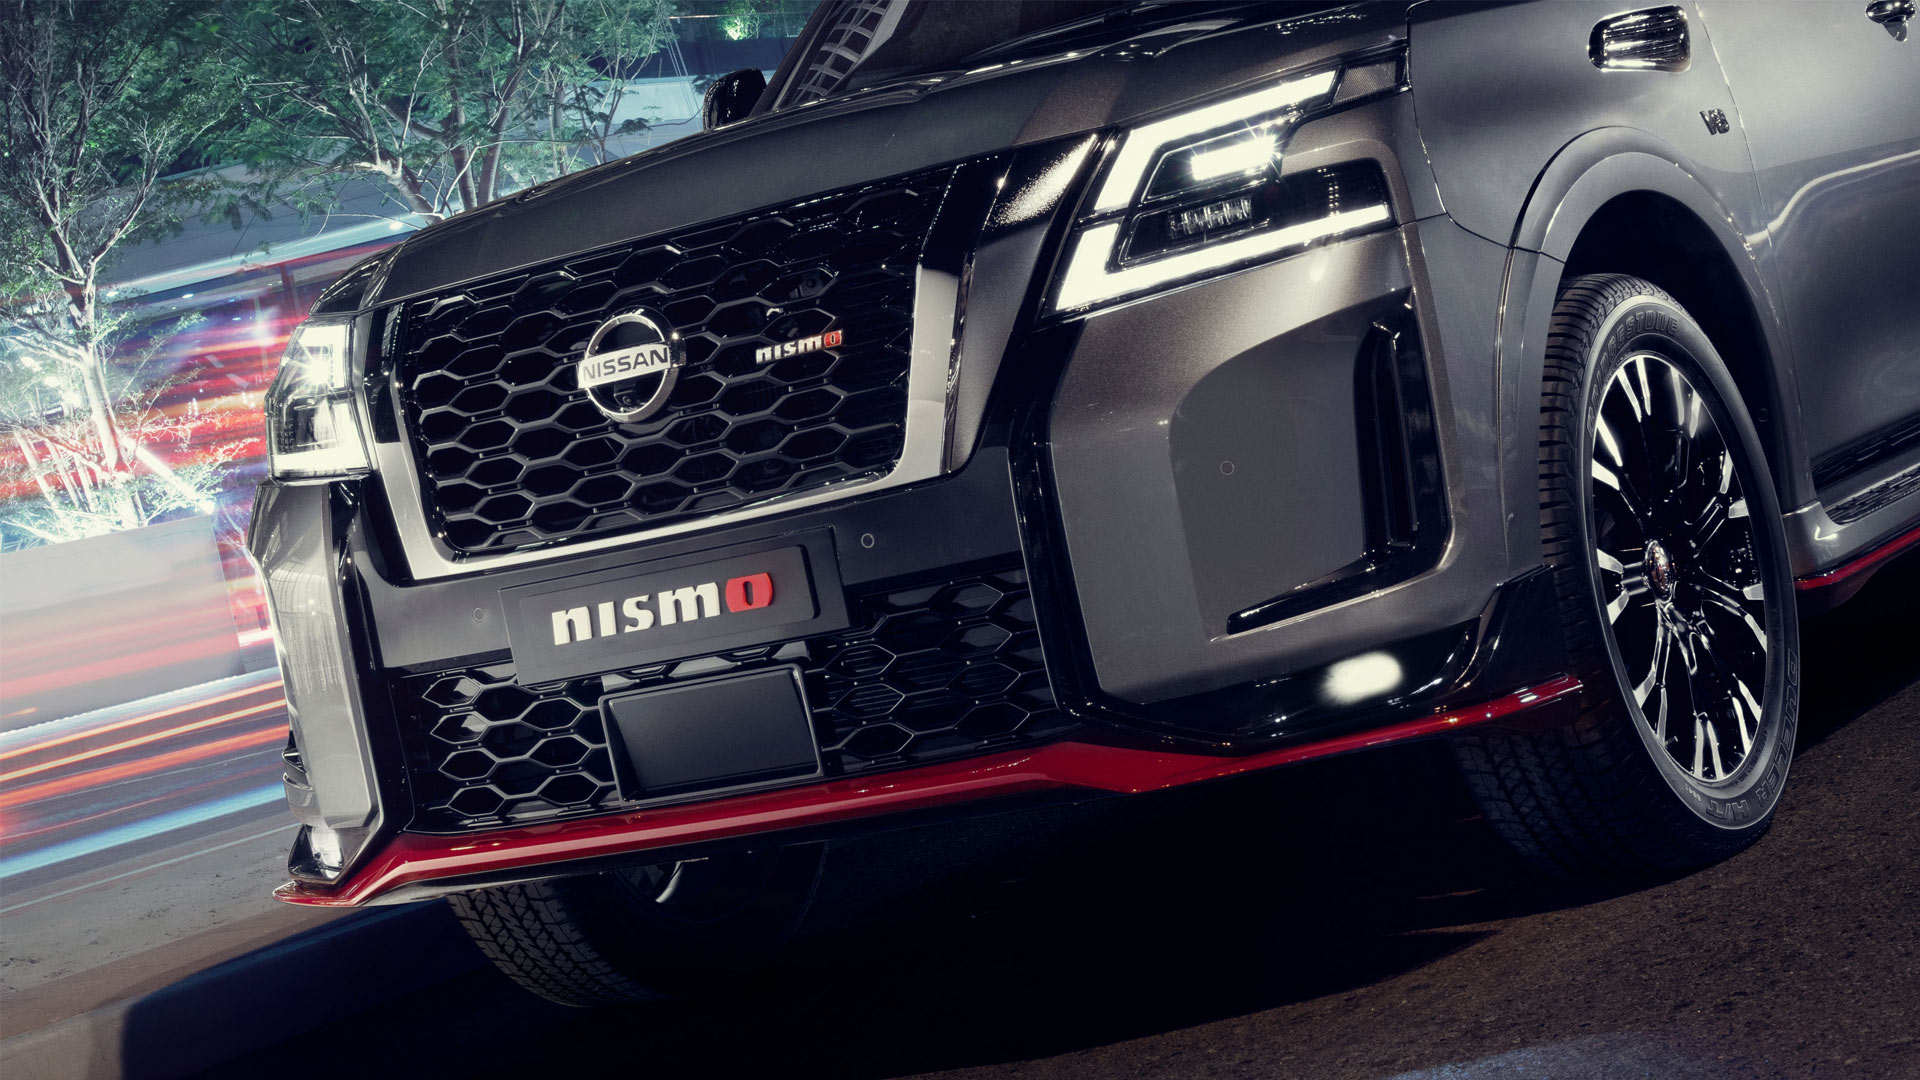 The Nissan Patrol Nismo Front Grille